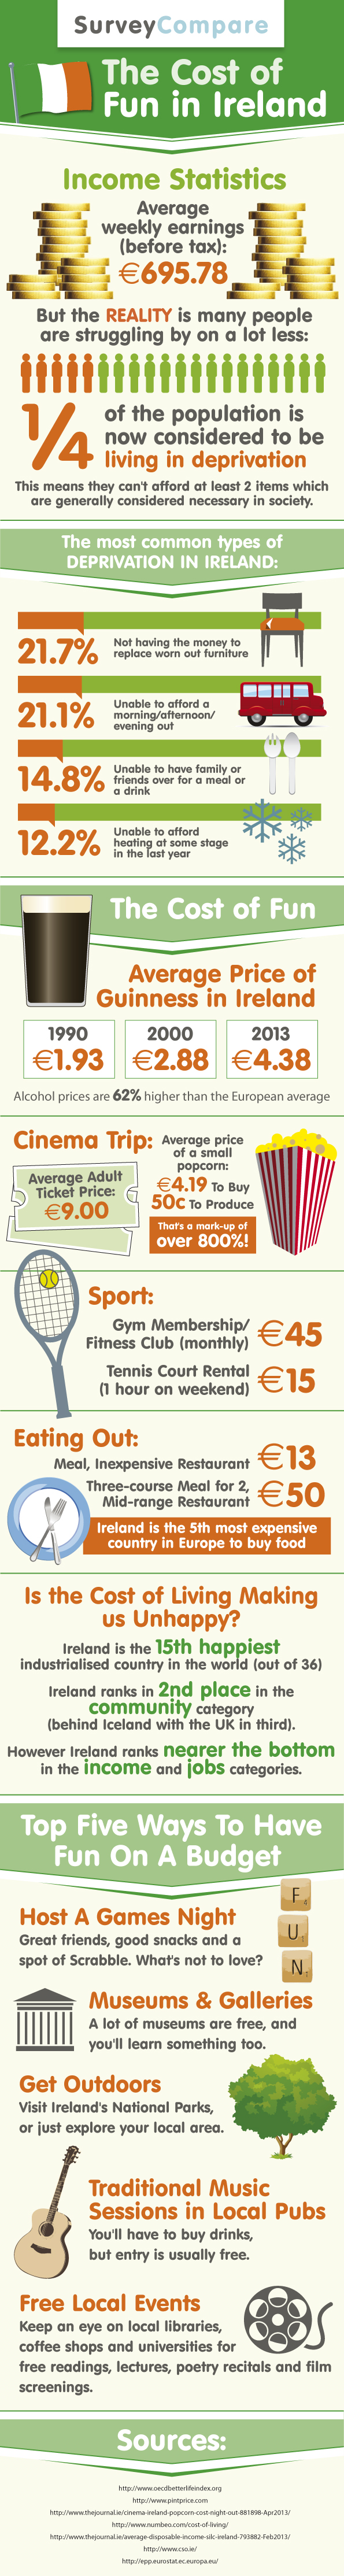 The Cost of Fun in Ireland